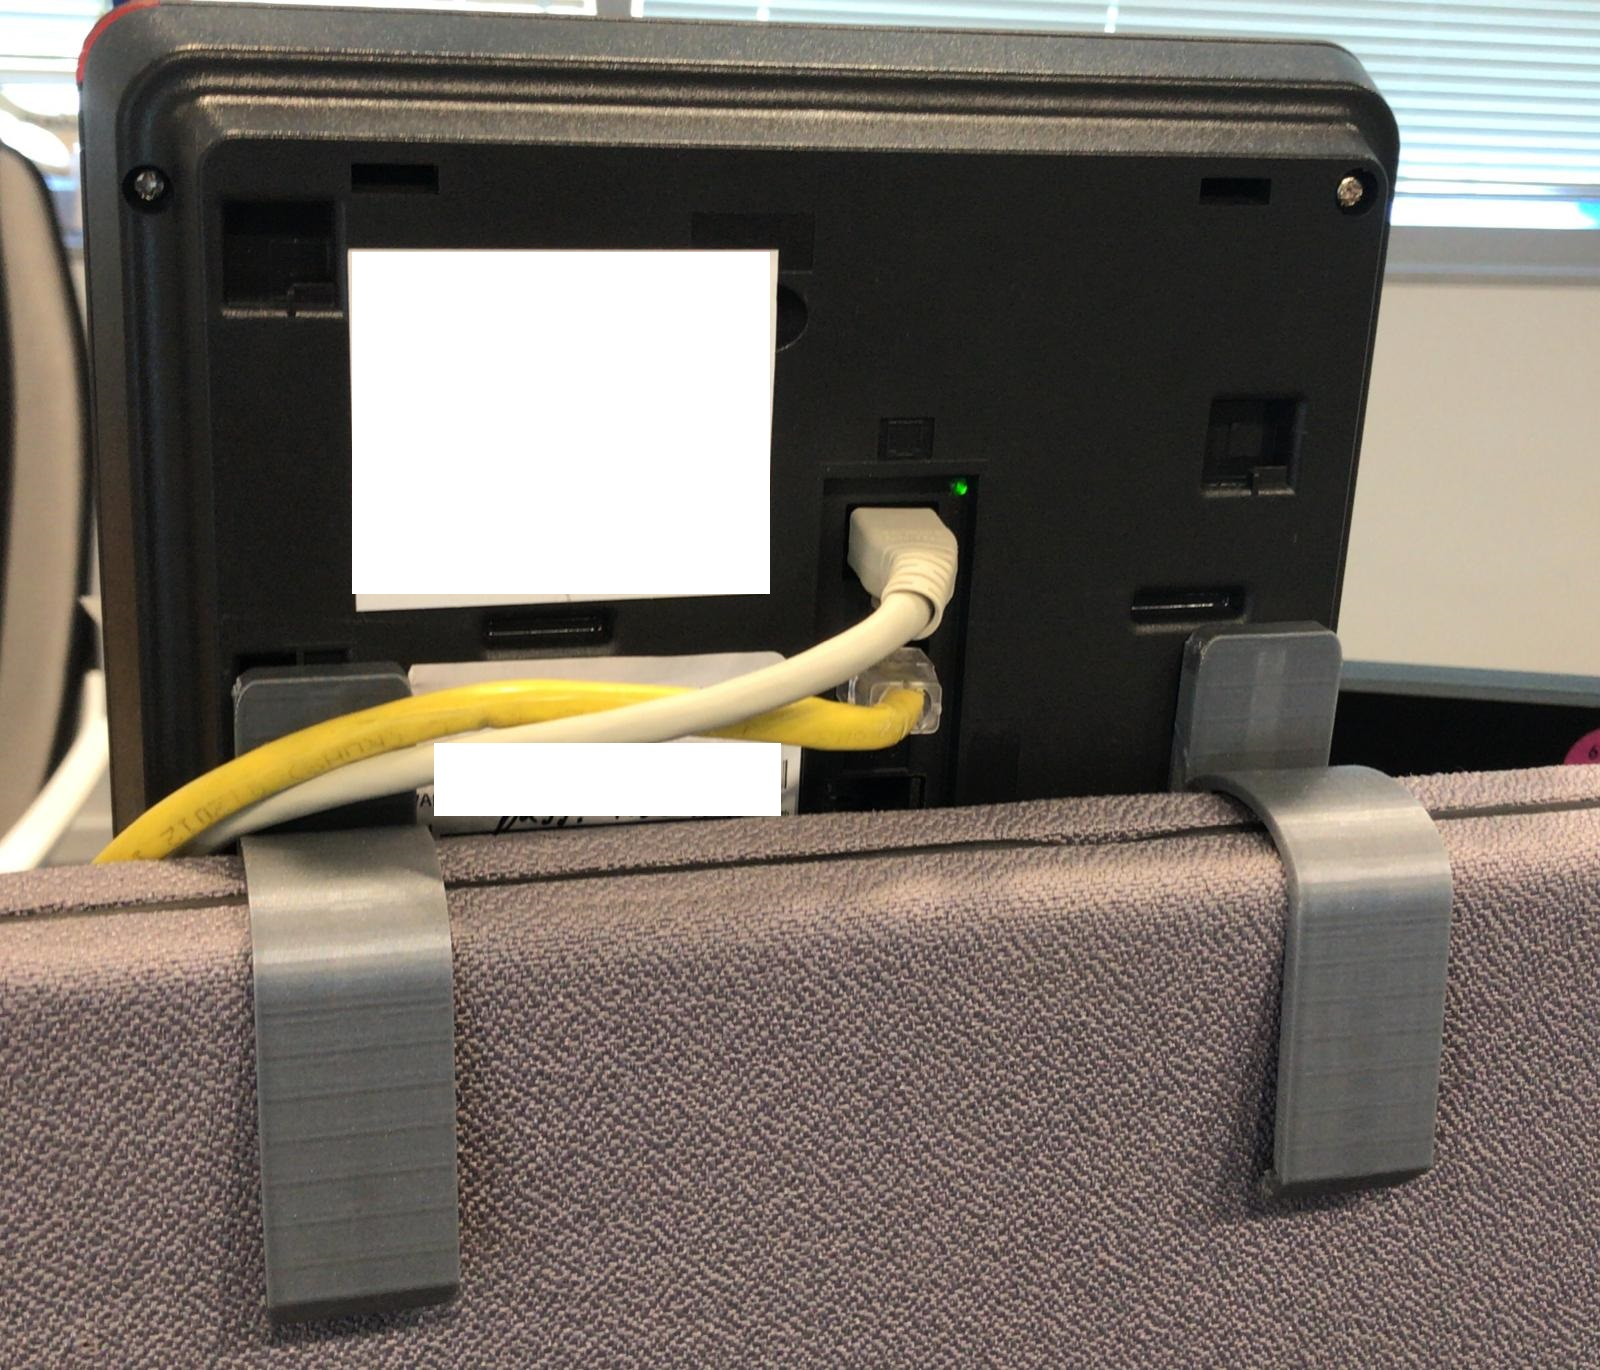 AVAYA 9608 Phone Office Hanger